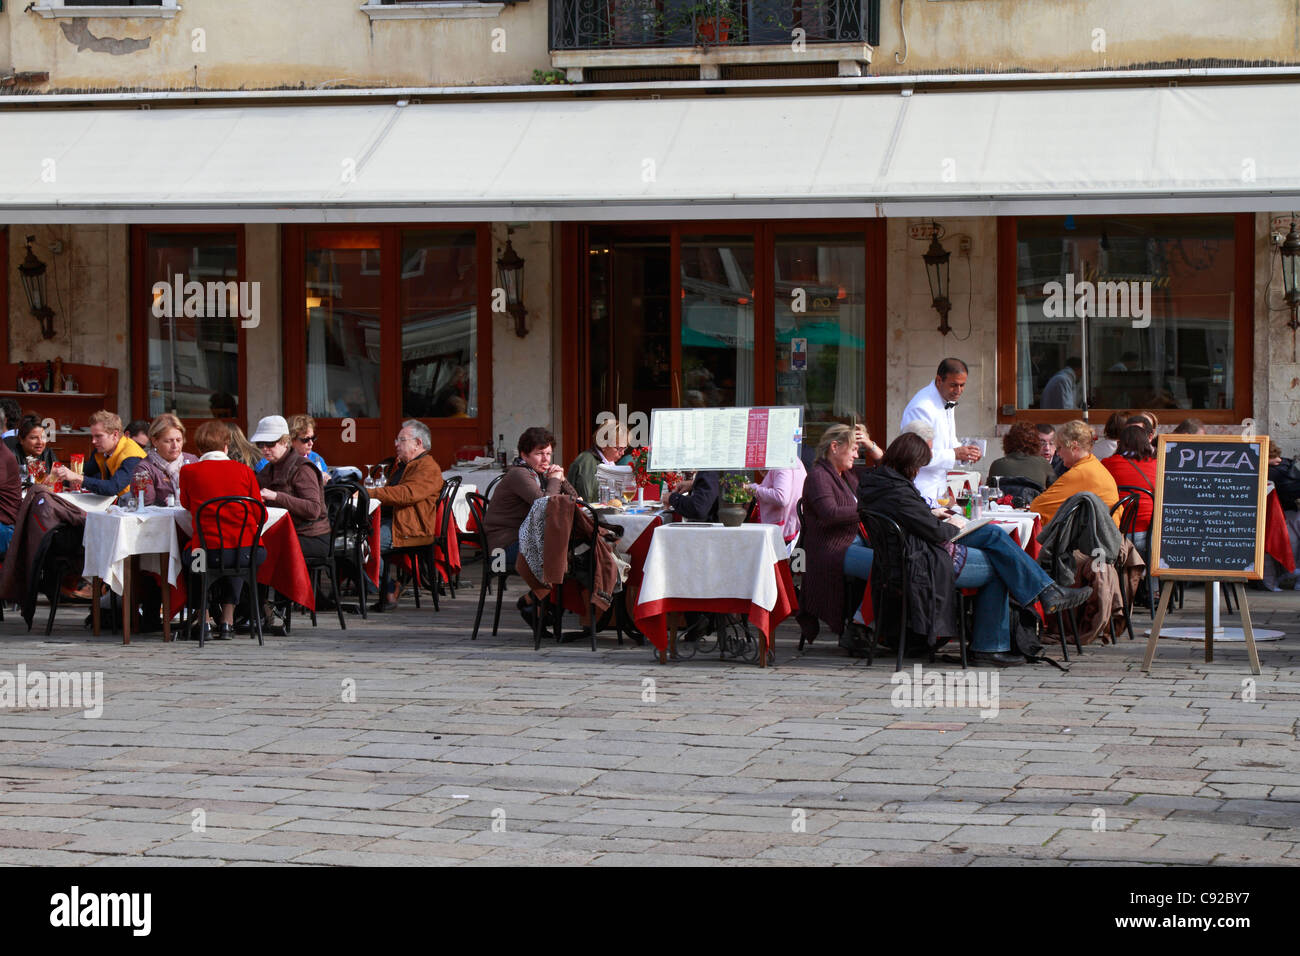 Diners at a piazza restaurant, Venice, Italy, Europe. - Stock Image